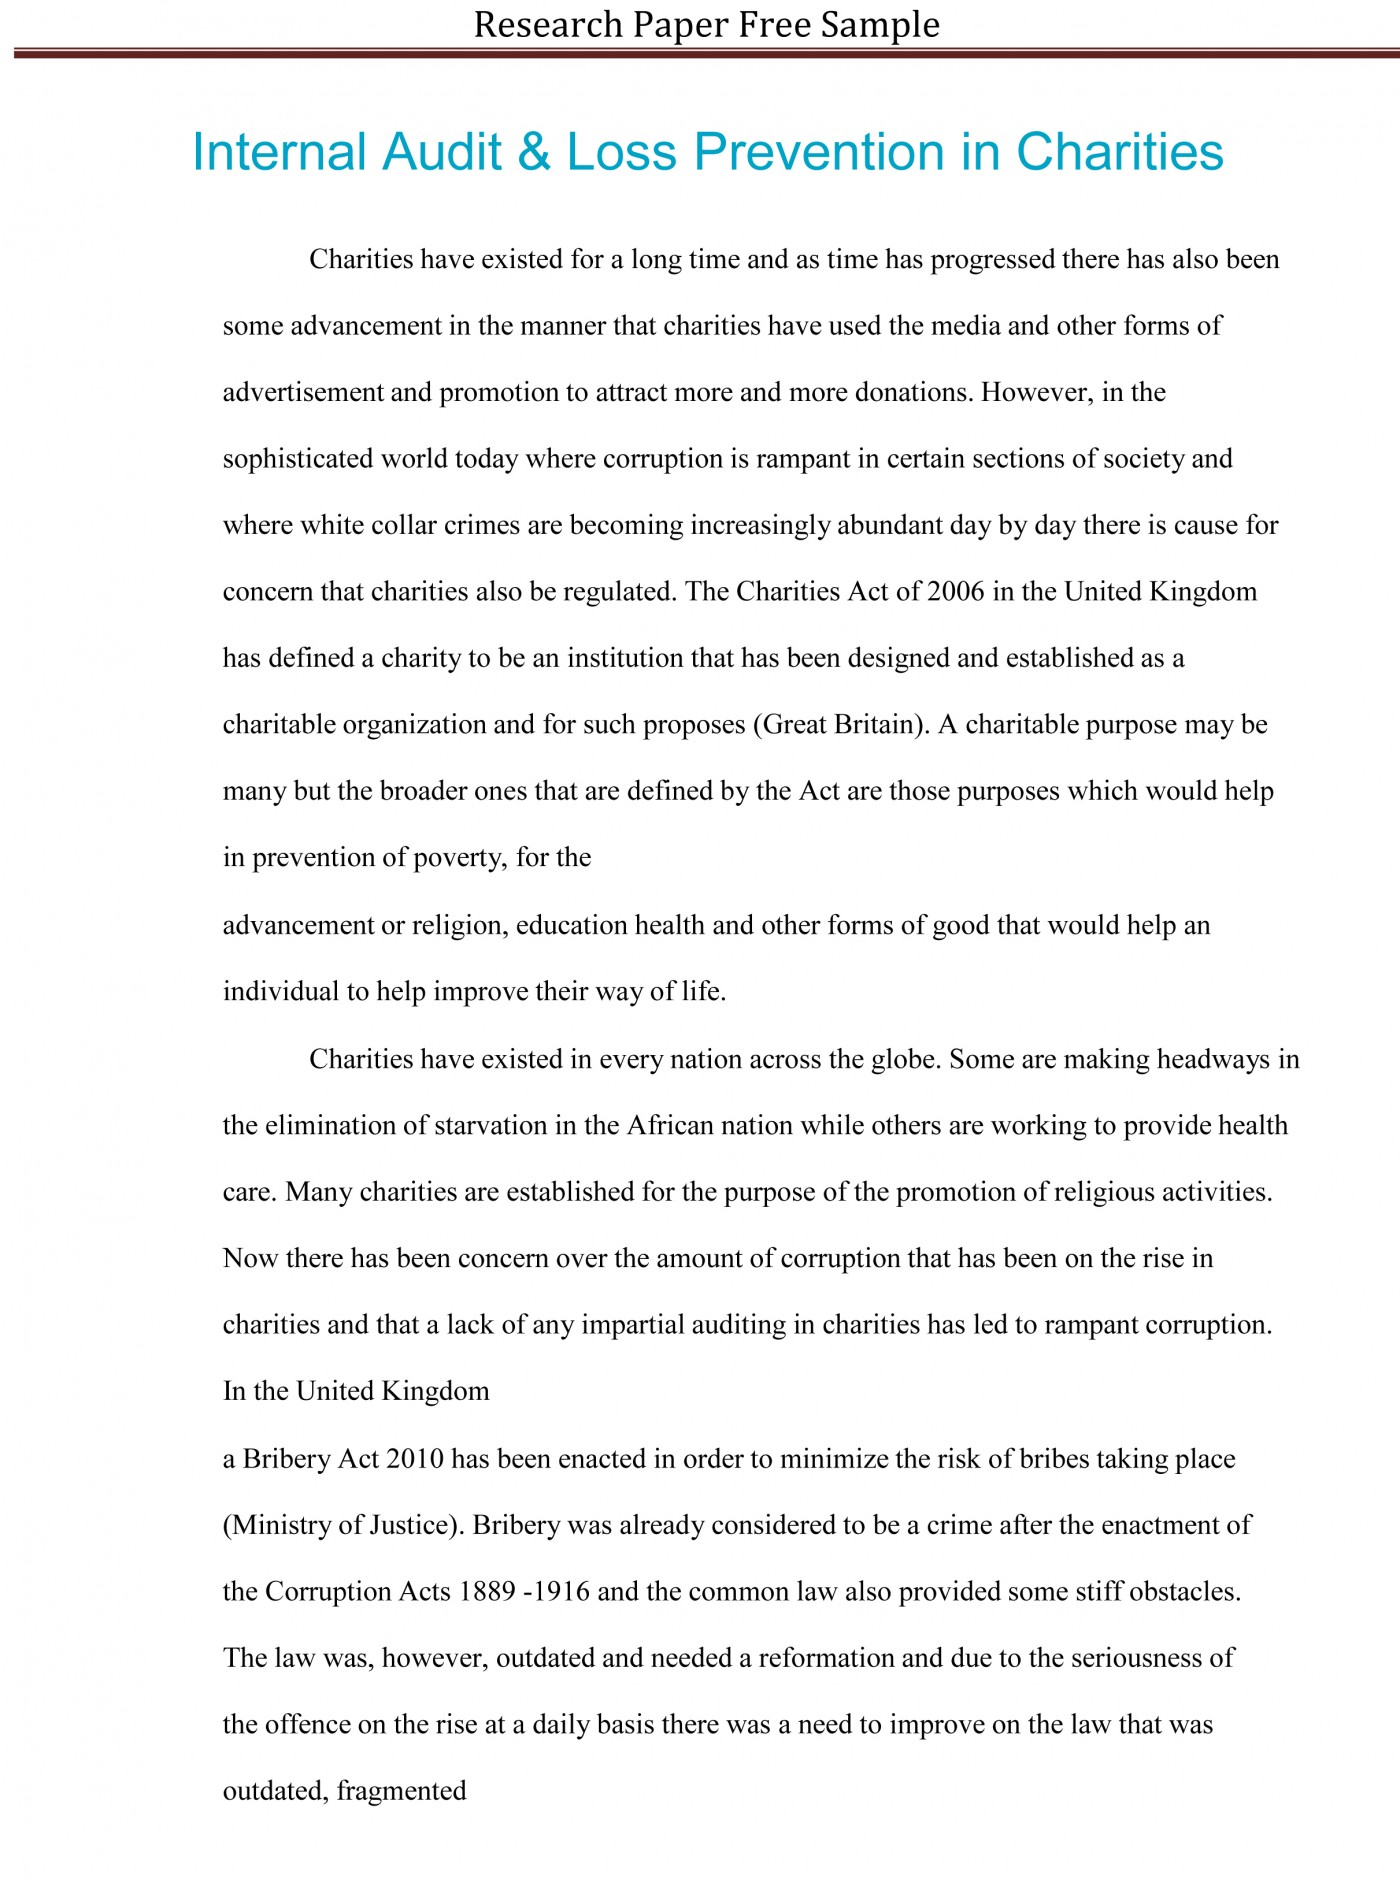 014 Example Of Introduction In Research Paper Help Writing Paragraph Unique Imrad Format About Smoking Cyberbullying 1400